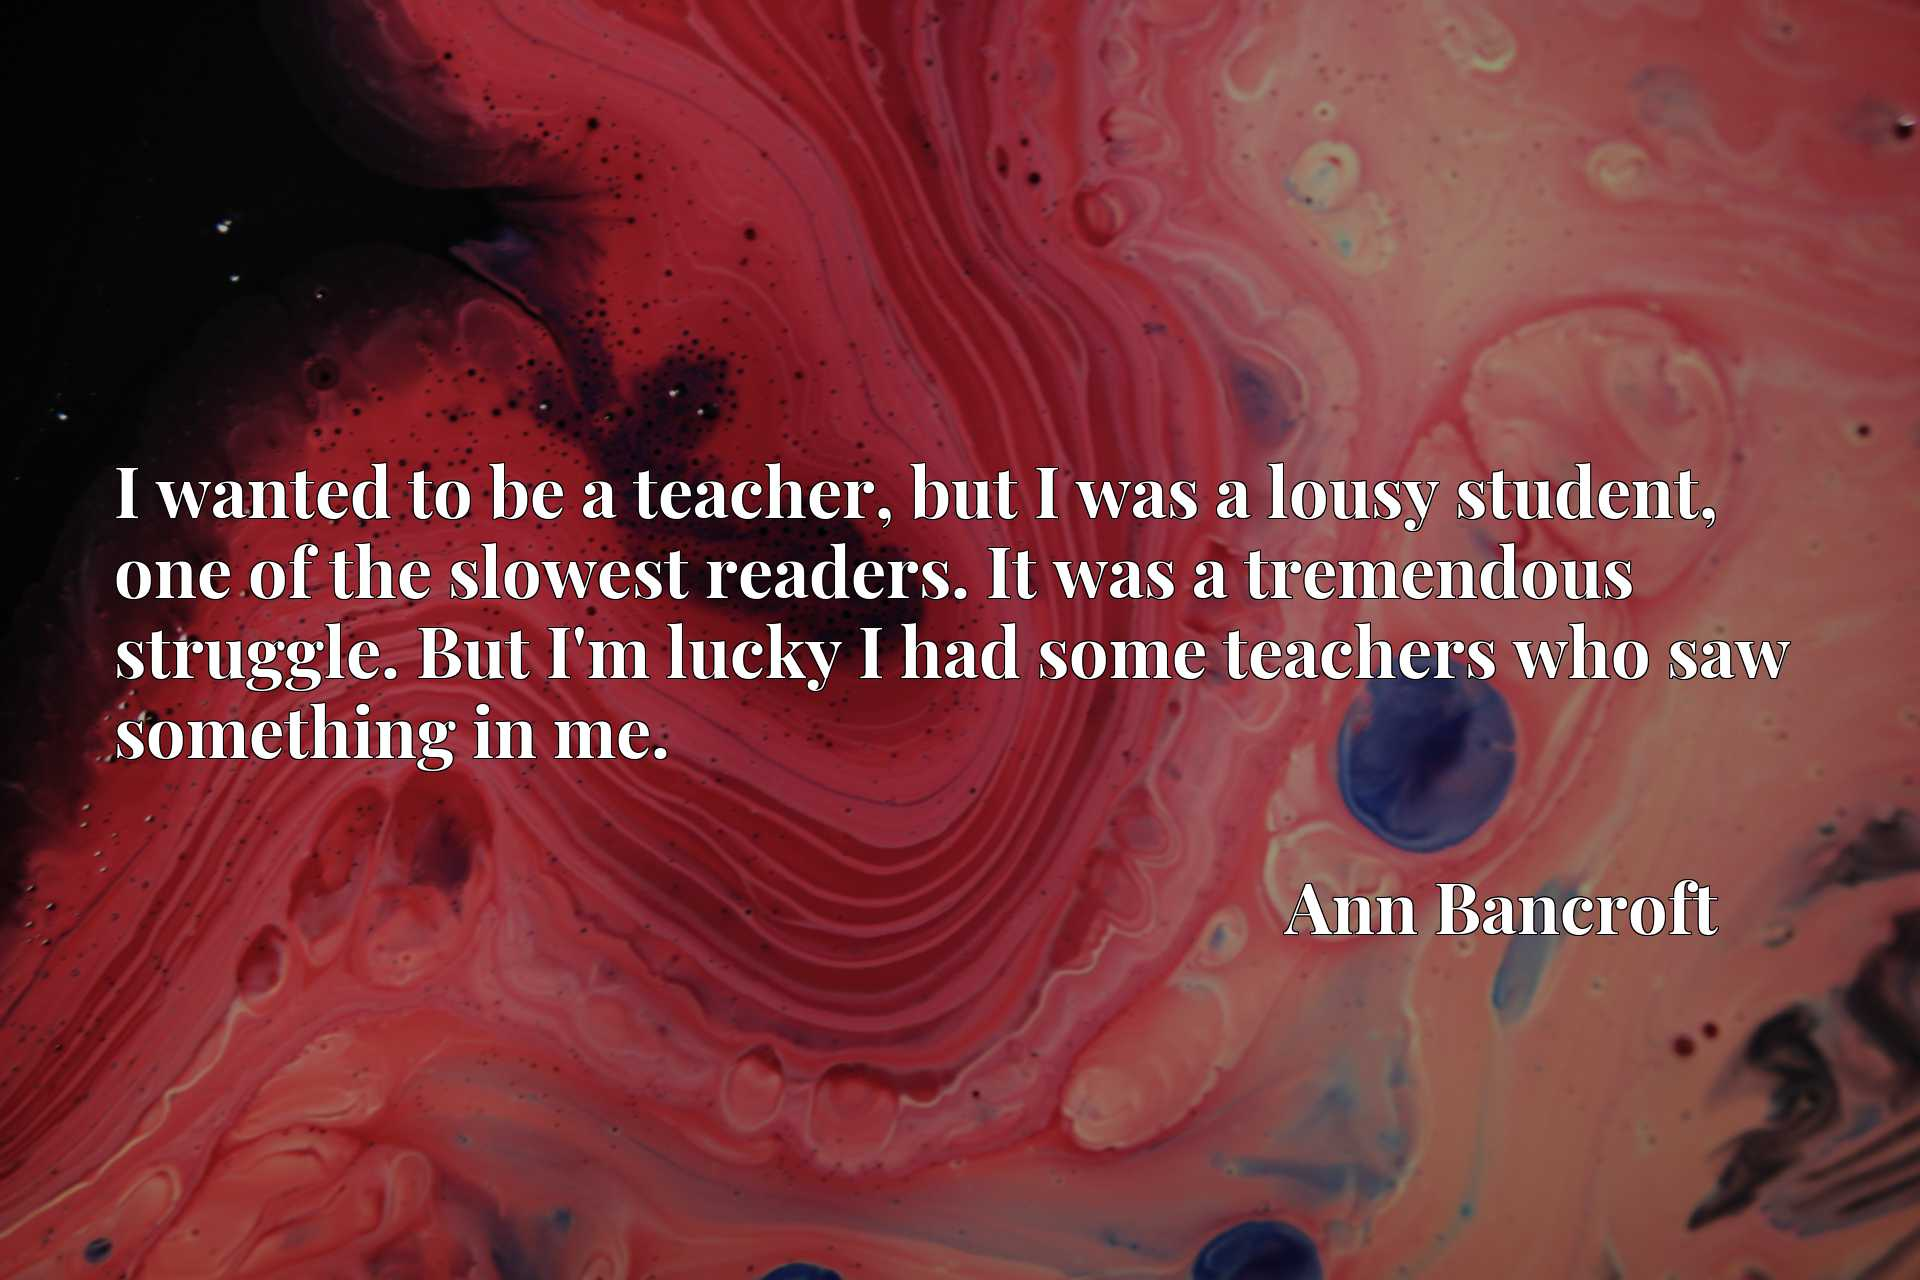 Quote Picture :I wanted to be a teacher, but I was a lousy student, one of the slowest readers. It was a tremendous struggle. But I'm lucky I had some teachers who saw something in me.